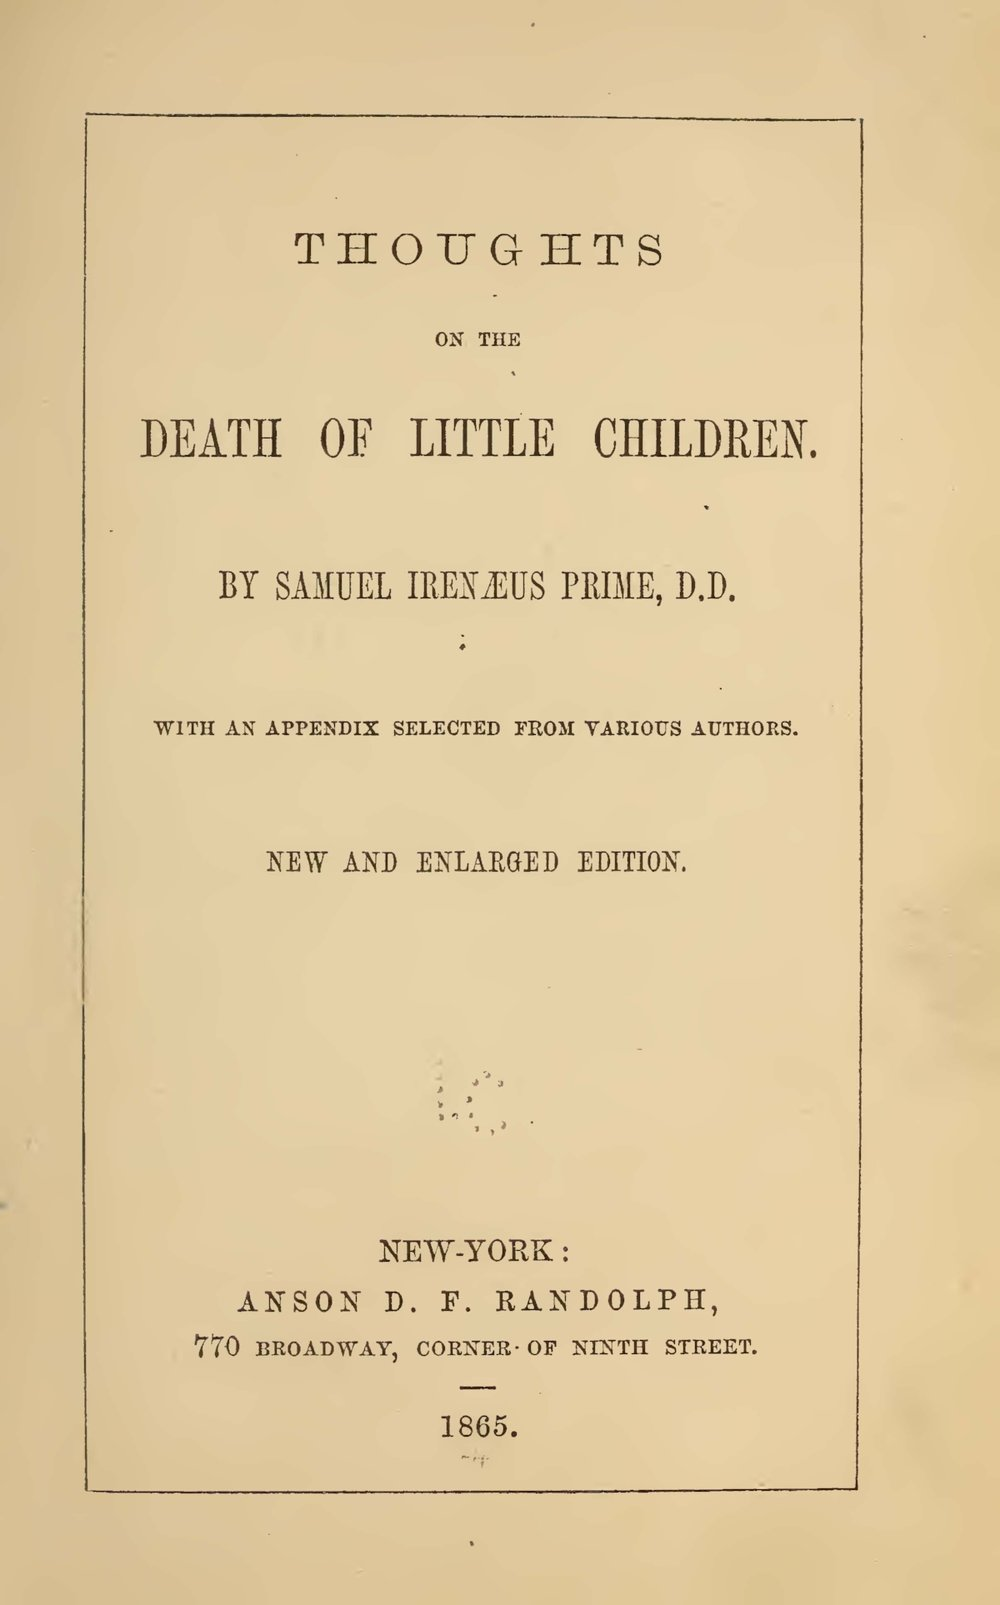 Prime, Samuel Irenaeus, Thoughts on the Death of Little Children Title Page.jpg